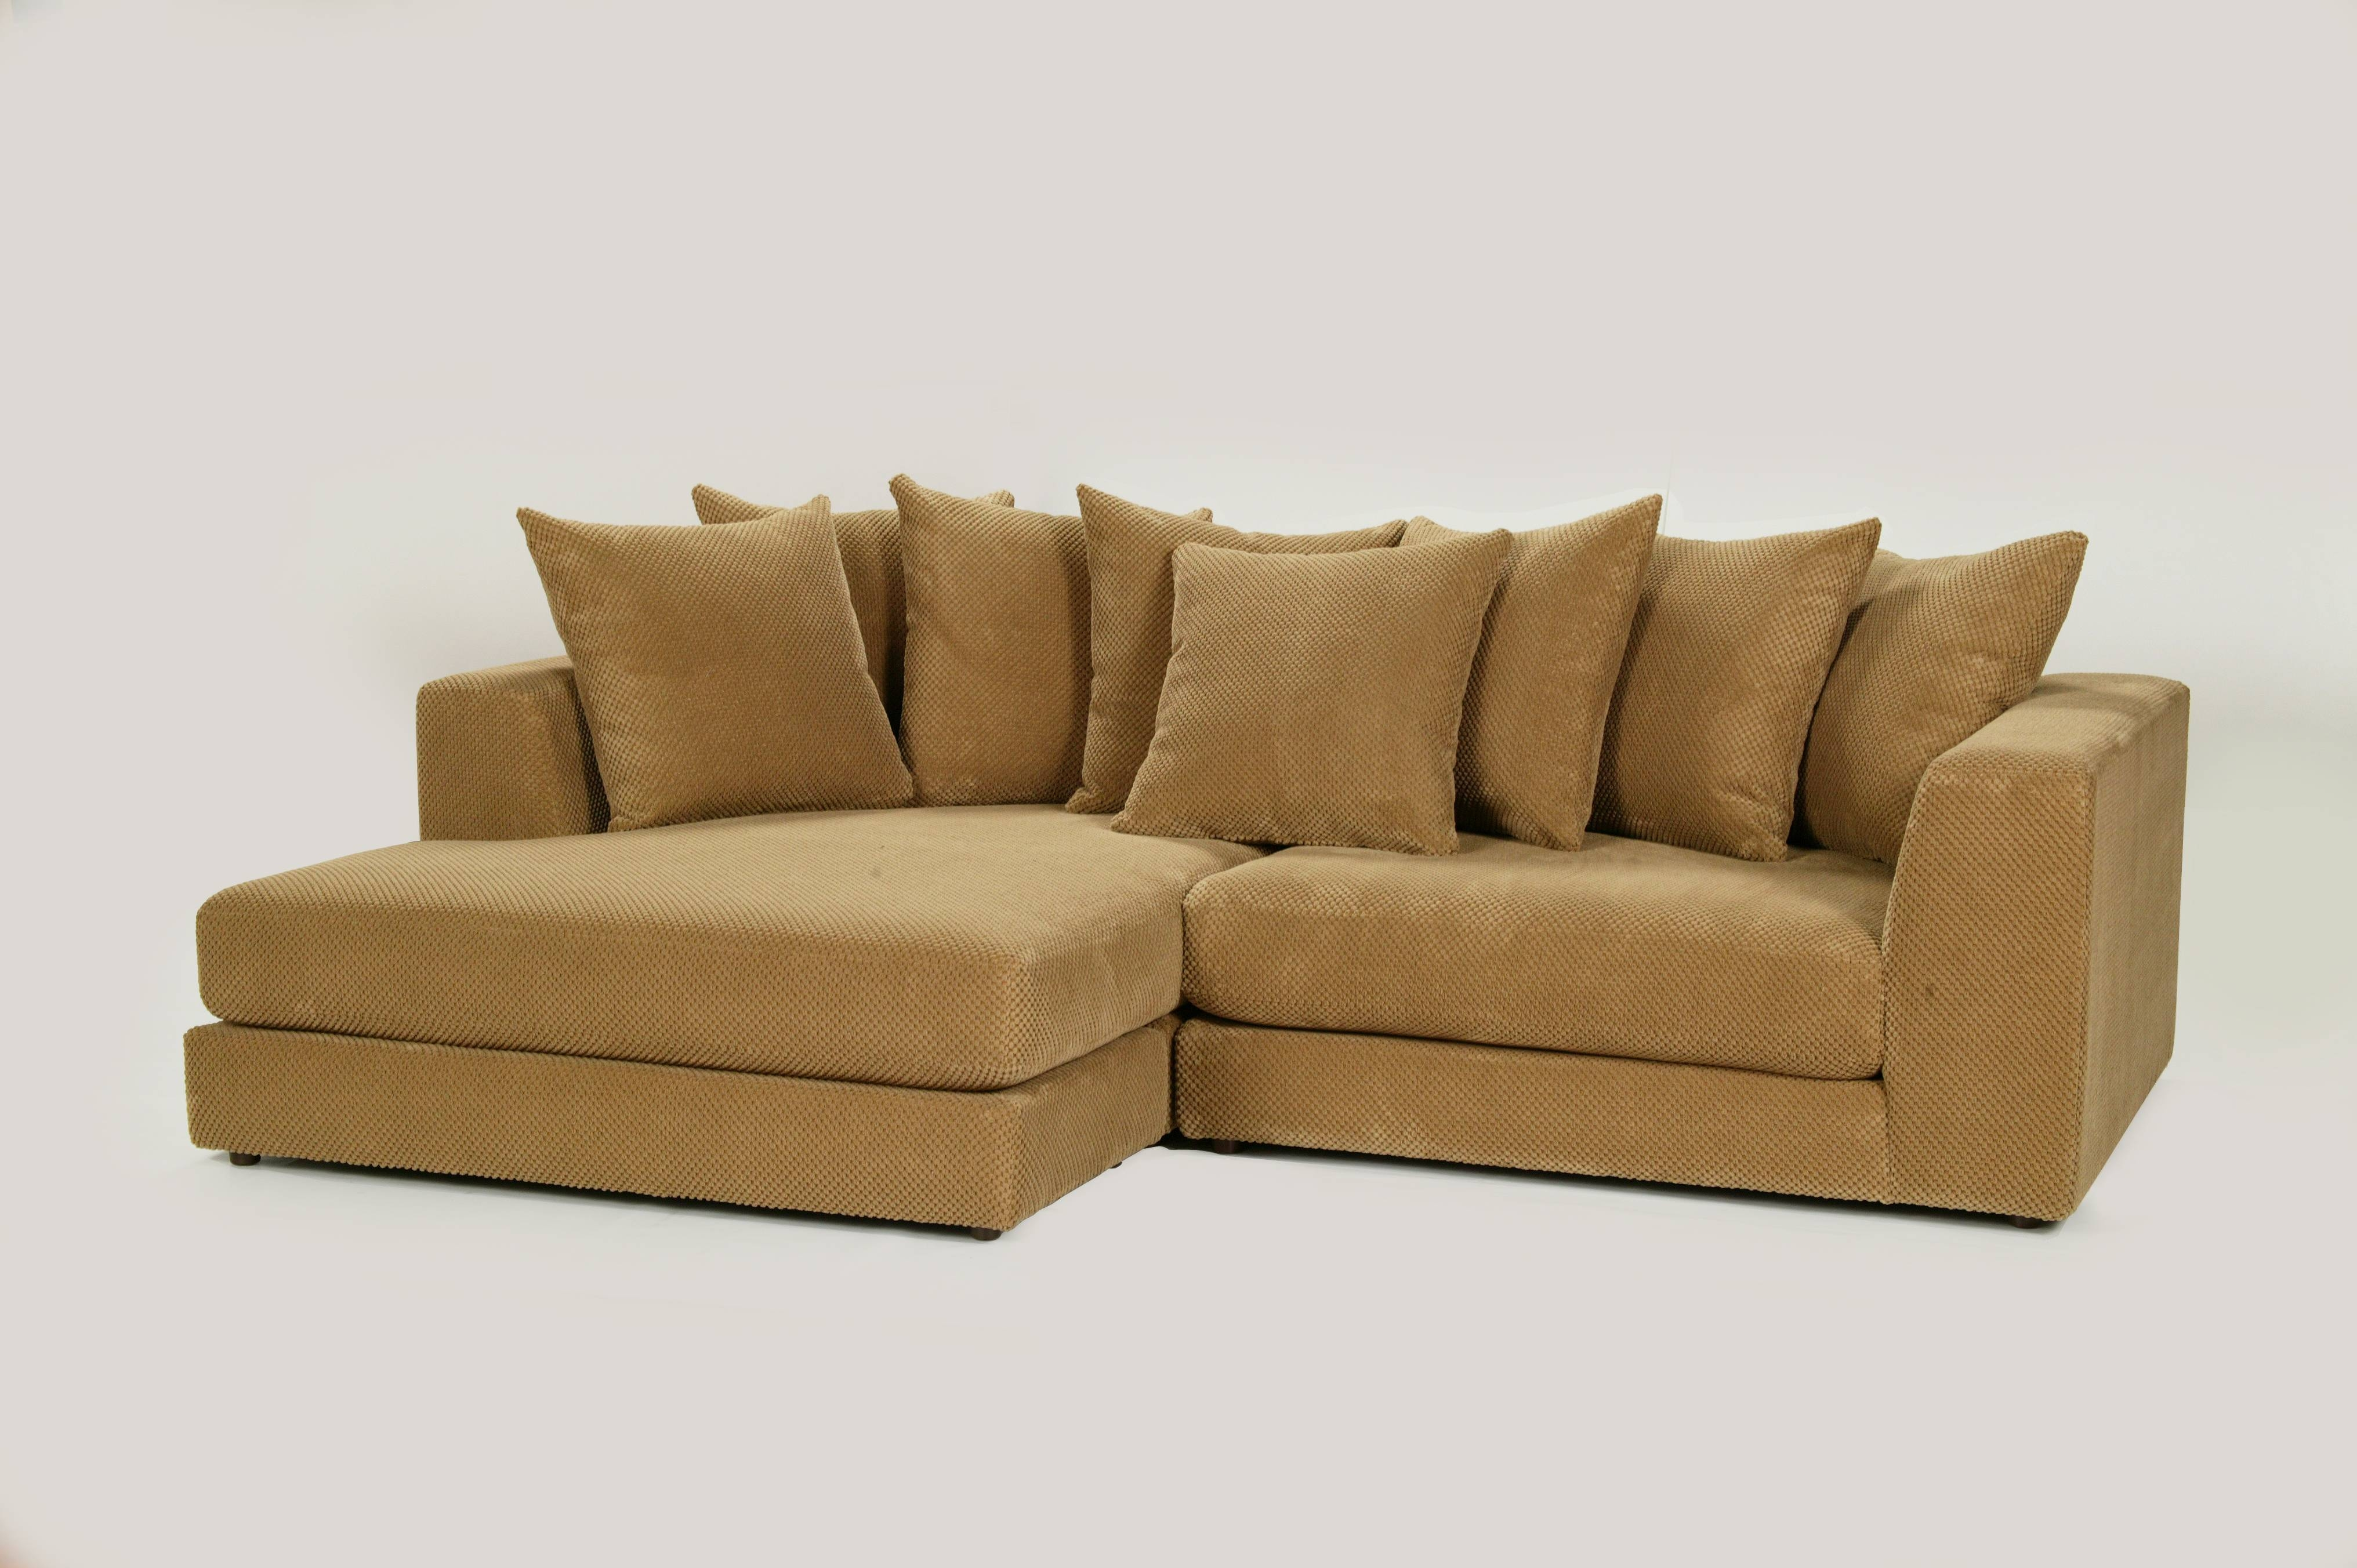 Robert Michaels Sofas And Sectionals throughout Gold Sectional Sofa (Image 19 of 25)